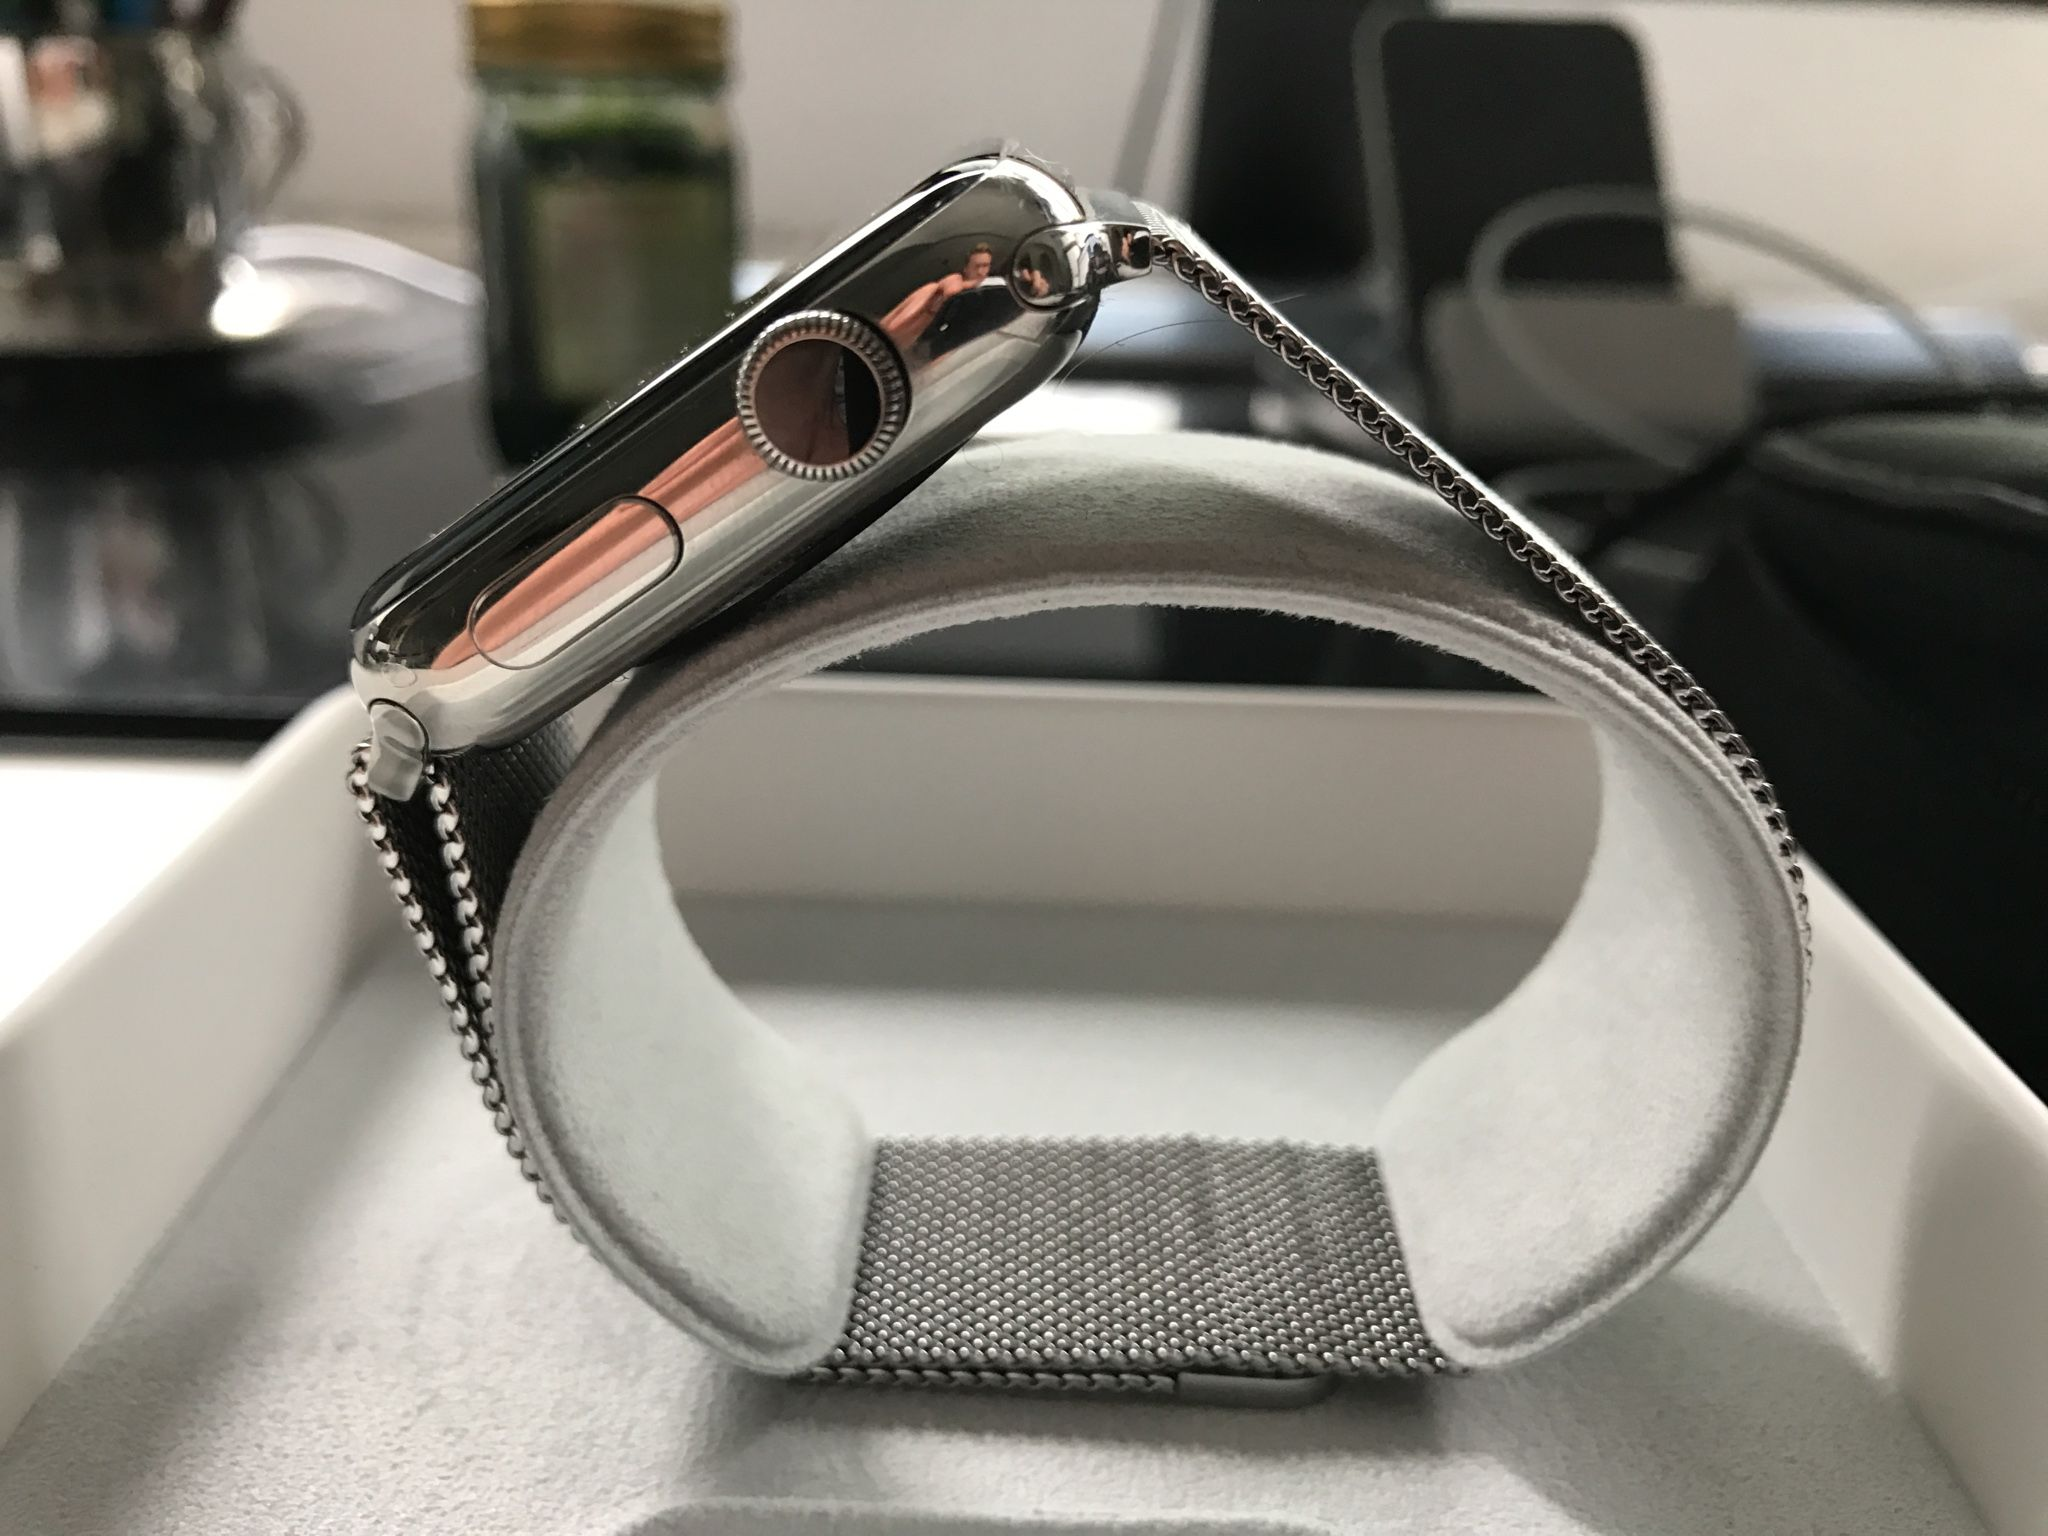 The weak point of the Apple Watch Milanaise is the bracelet: it scratched and discolored slightly. Photo: Sascha Tegtmeyer